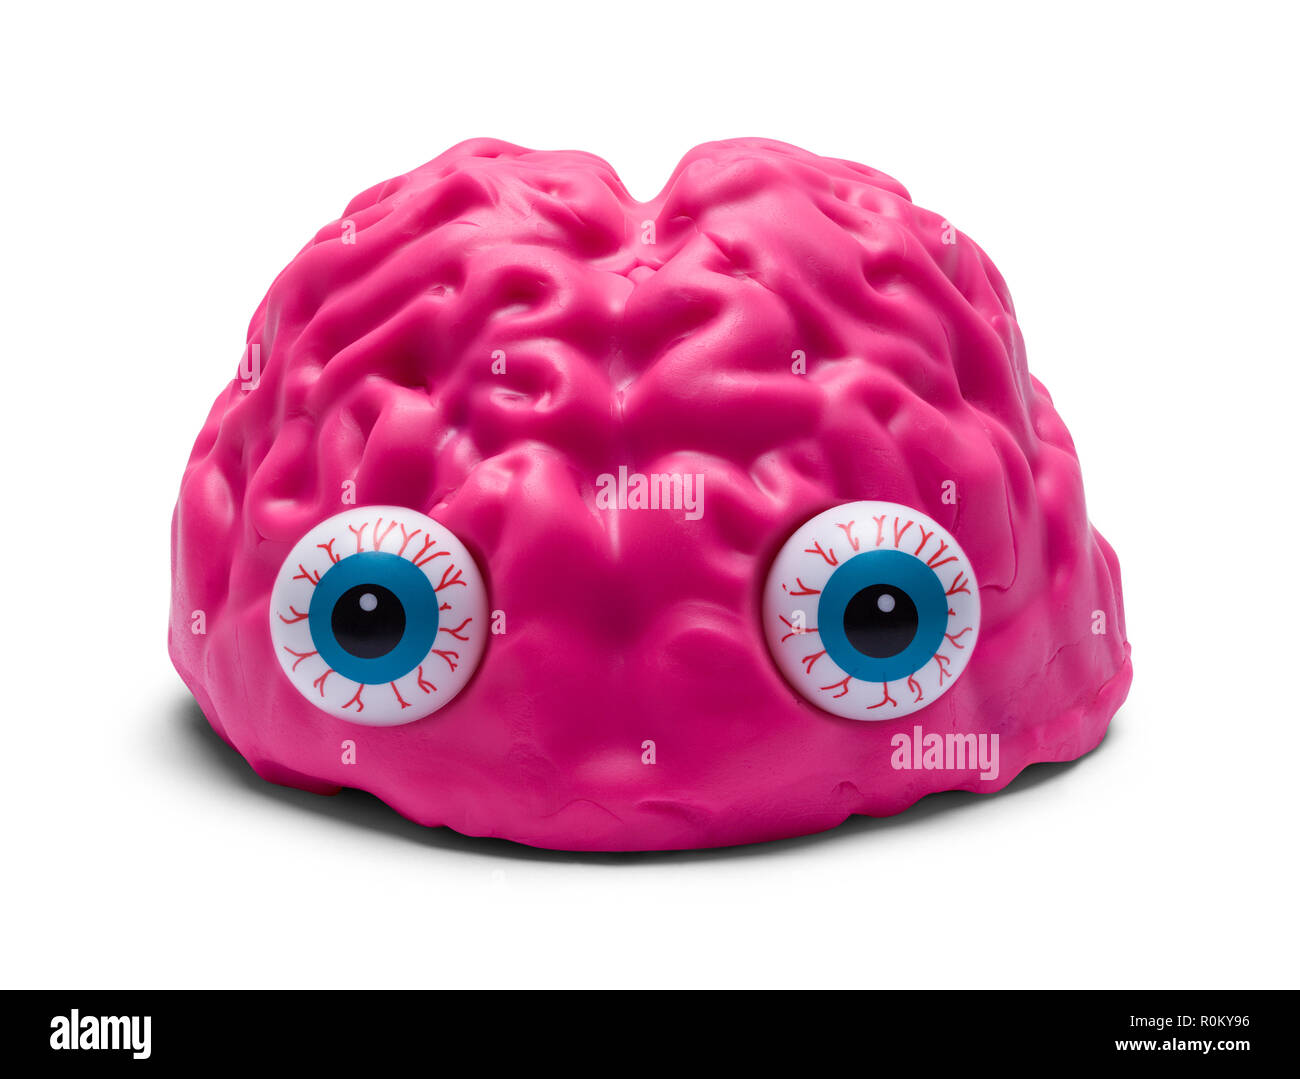 Brain Front with Eyes Isolated on a White Background. - Stock Image